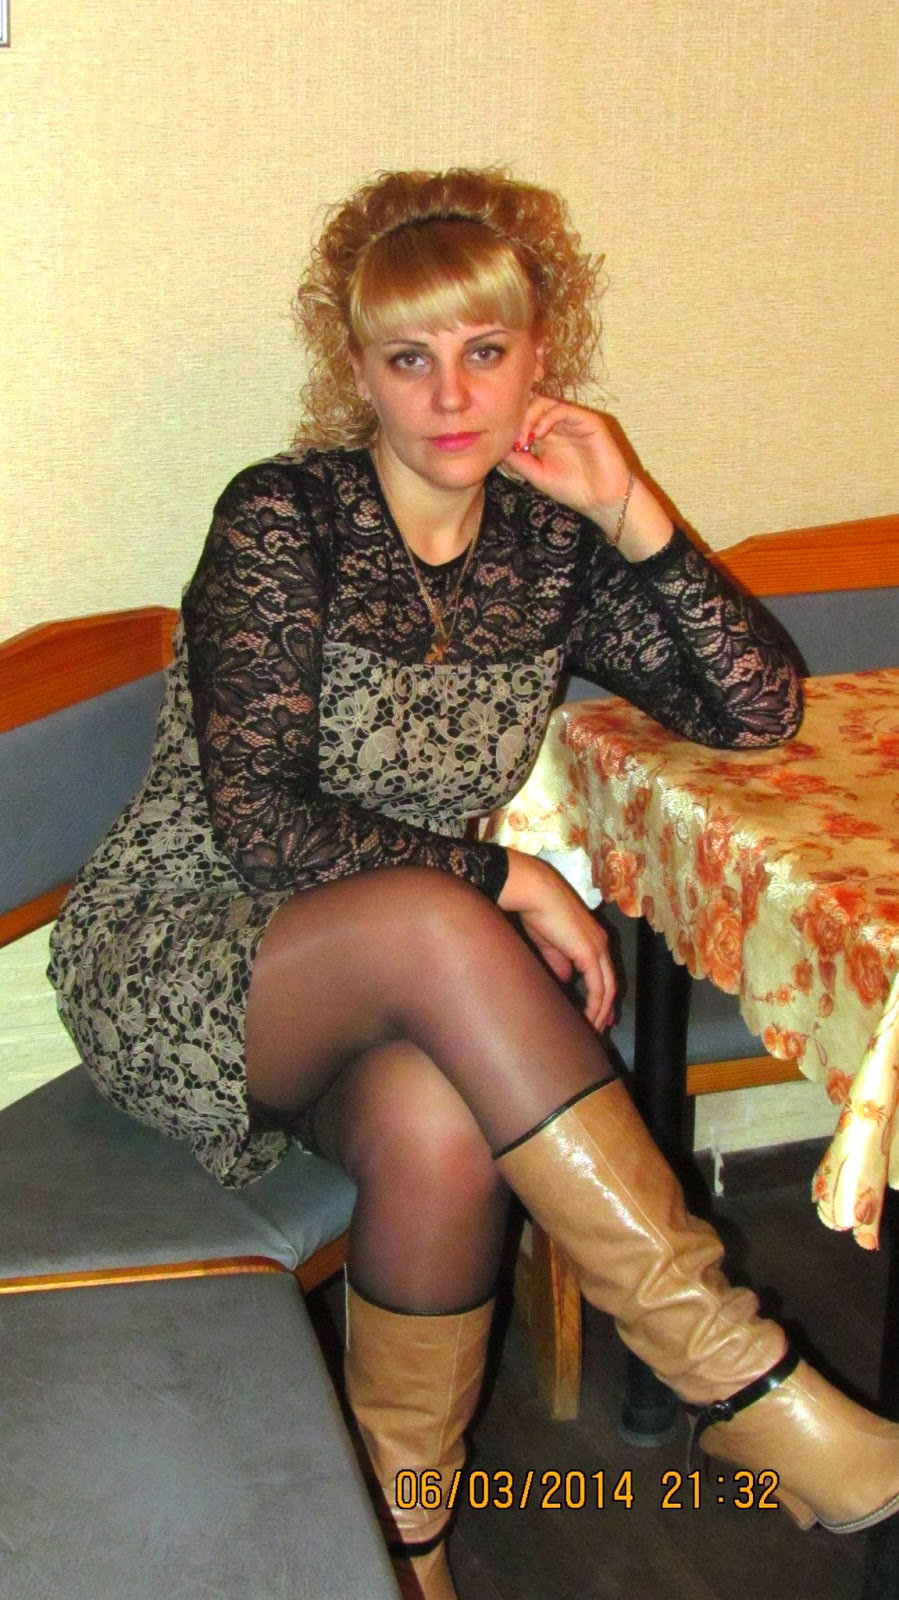 Boots and pantyhose